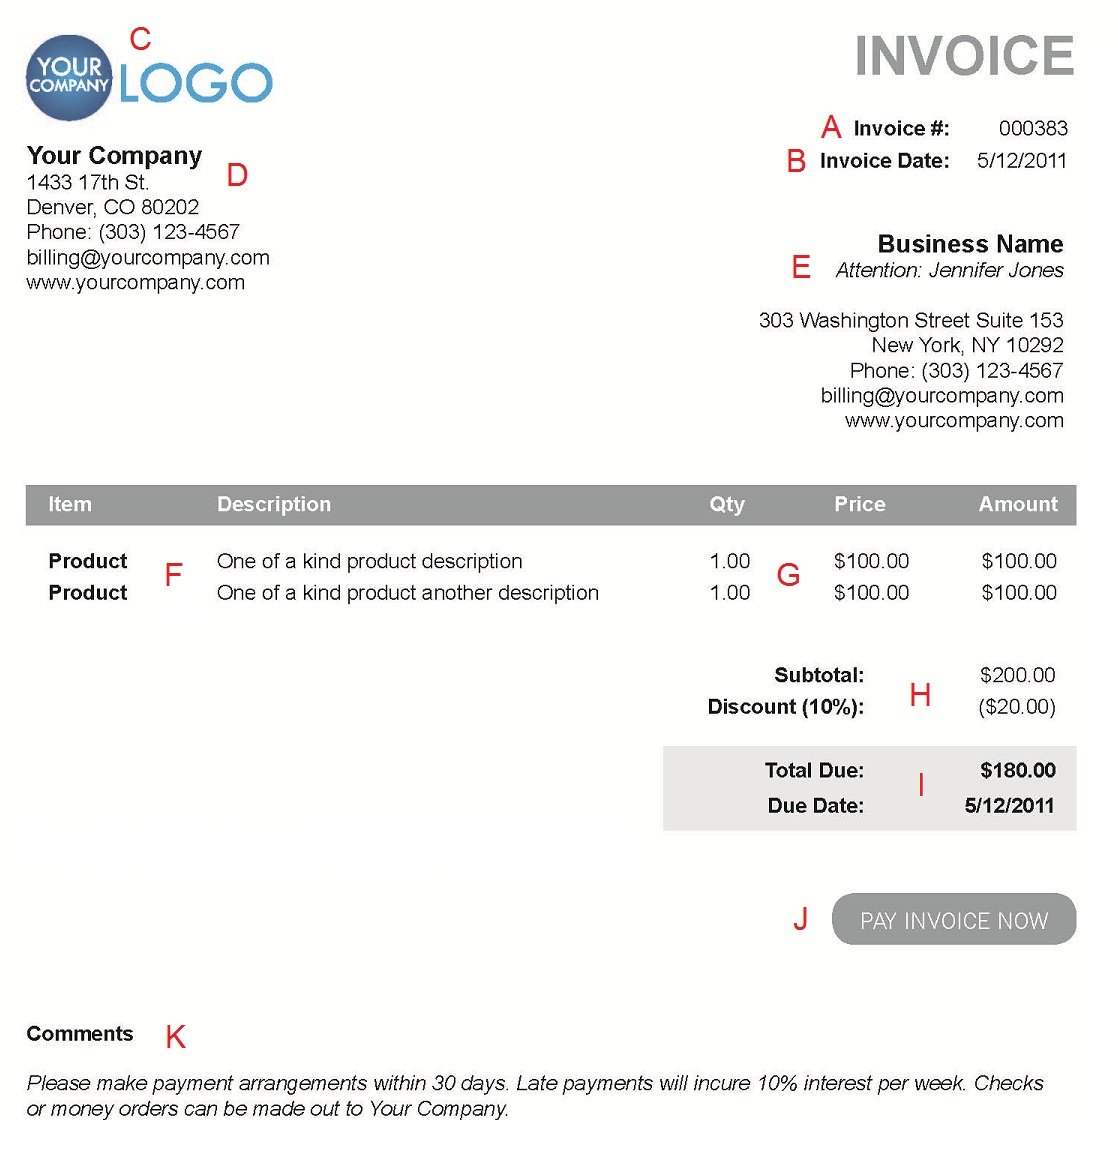 Aaaaeroincus  Prepossessing The  Different Sections Of An Electronic Payment Invoice With Glamorous A  With Comely Proper Invoice Format Also Templates Invoice In Addition Overdue Invoice Sample Letter And Contractors Invoice Template As Well As Microsoft Word Invoices Additionally Proforma Invoice Format From Paysimplecom With Aaaaeroincus  Glamorous The  Different Sections Of An Electronic Payment Invoice With Comely A  And Prepossessing Proper Invoice Format Also Templates Invoice In Addition Overdue Invoice Sample Letter From Paysimplecom